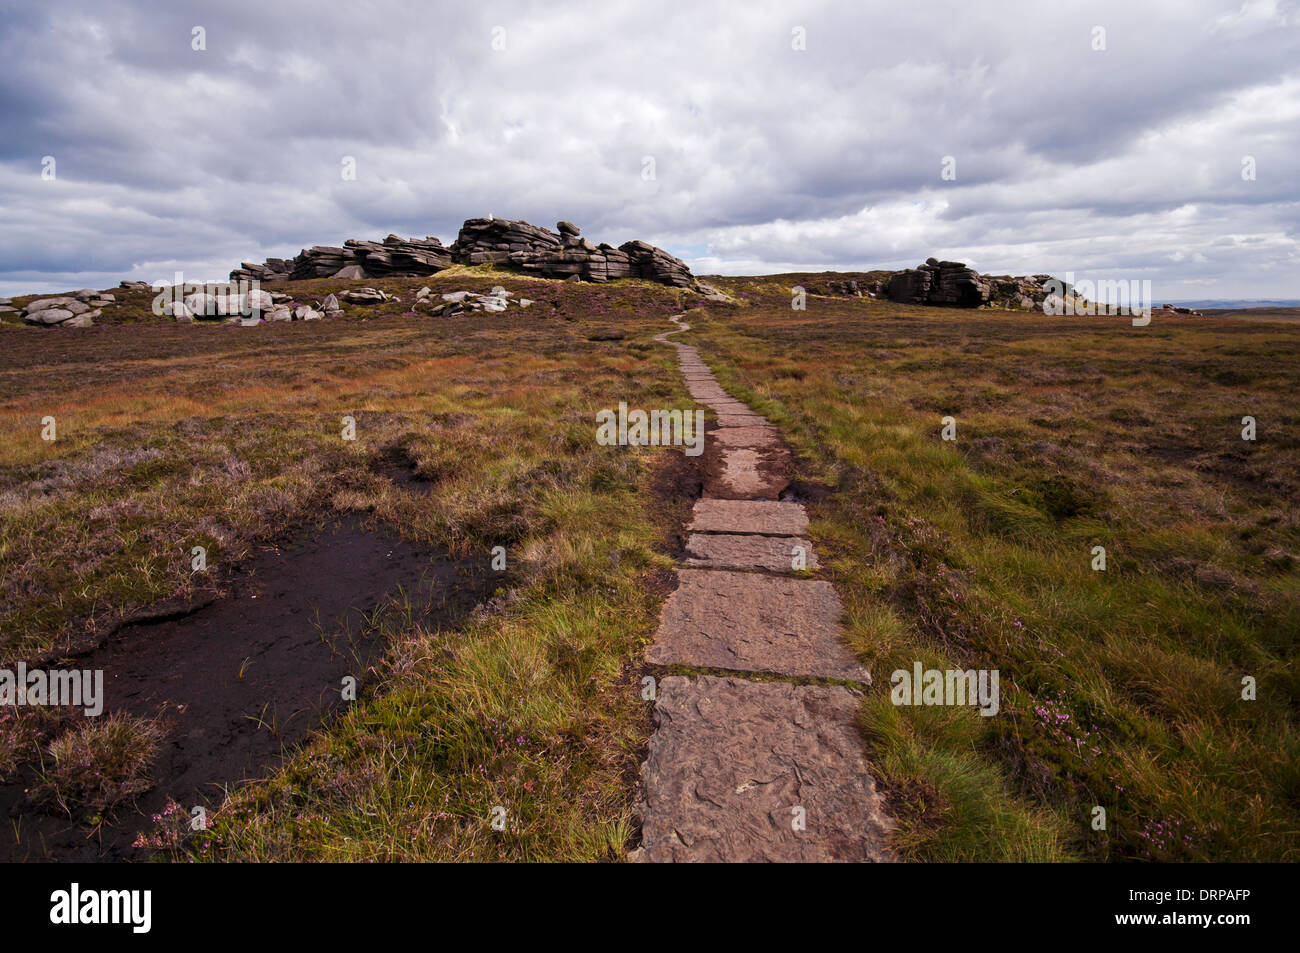 Footpath to Back Tor from Lost Lad on Derwent Edge in the Peak District National Park. - Stock Image